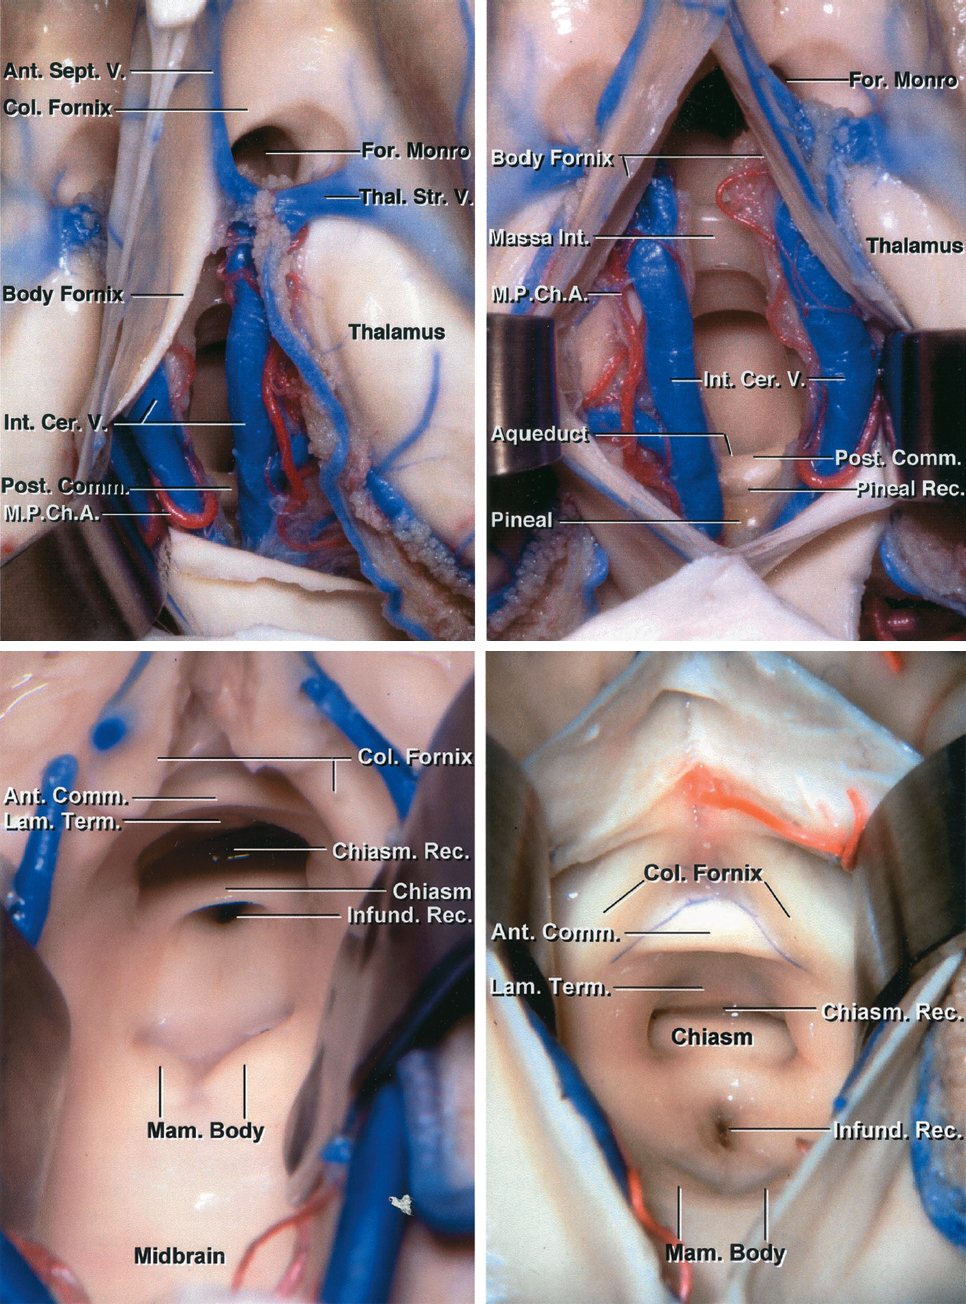 Figure 2: Transchoroidal and interforniceal dissections are demonstrated (upper row).Note the more encompassing exposure of the interforniceal approach with wide disclosure of the internal cerebral veins and the floor of the third ventricle. The lower images further identify relevant anatomical structures on the floor. This wide exposure is possible at the expense of potential injury to both forniceal bodies. The highly vulnerable internal cerebral veins should not be retracted aggressively.